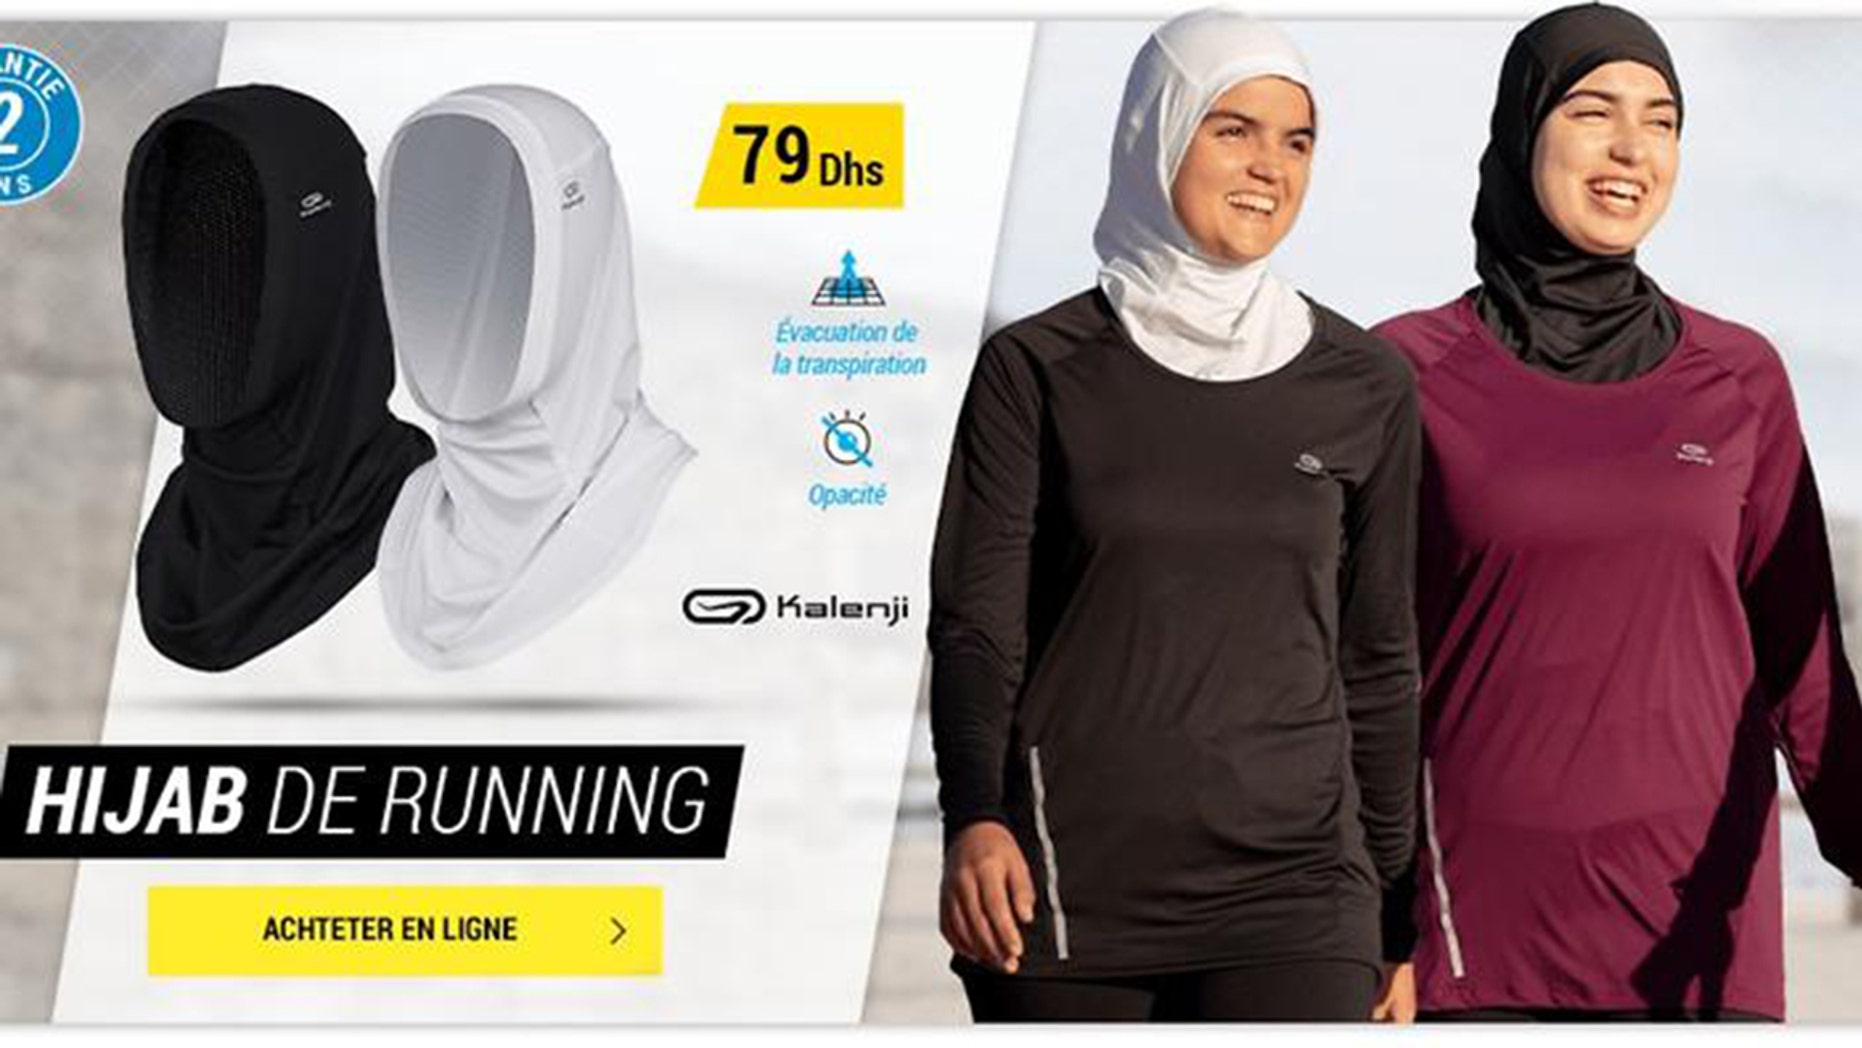 A sports goods store postpones sales of a sport hijab in France.